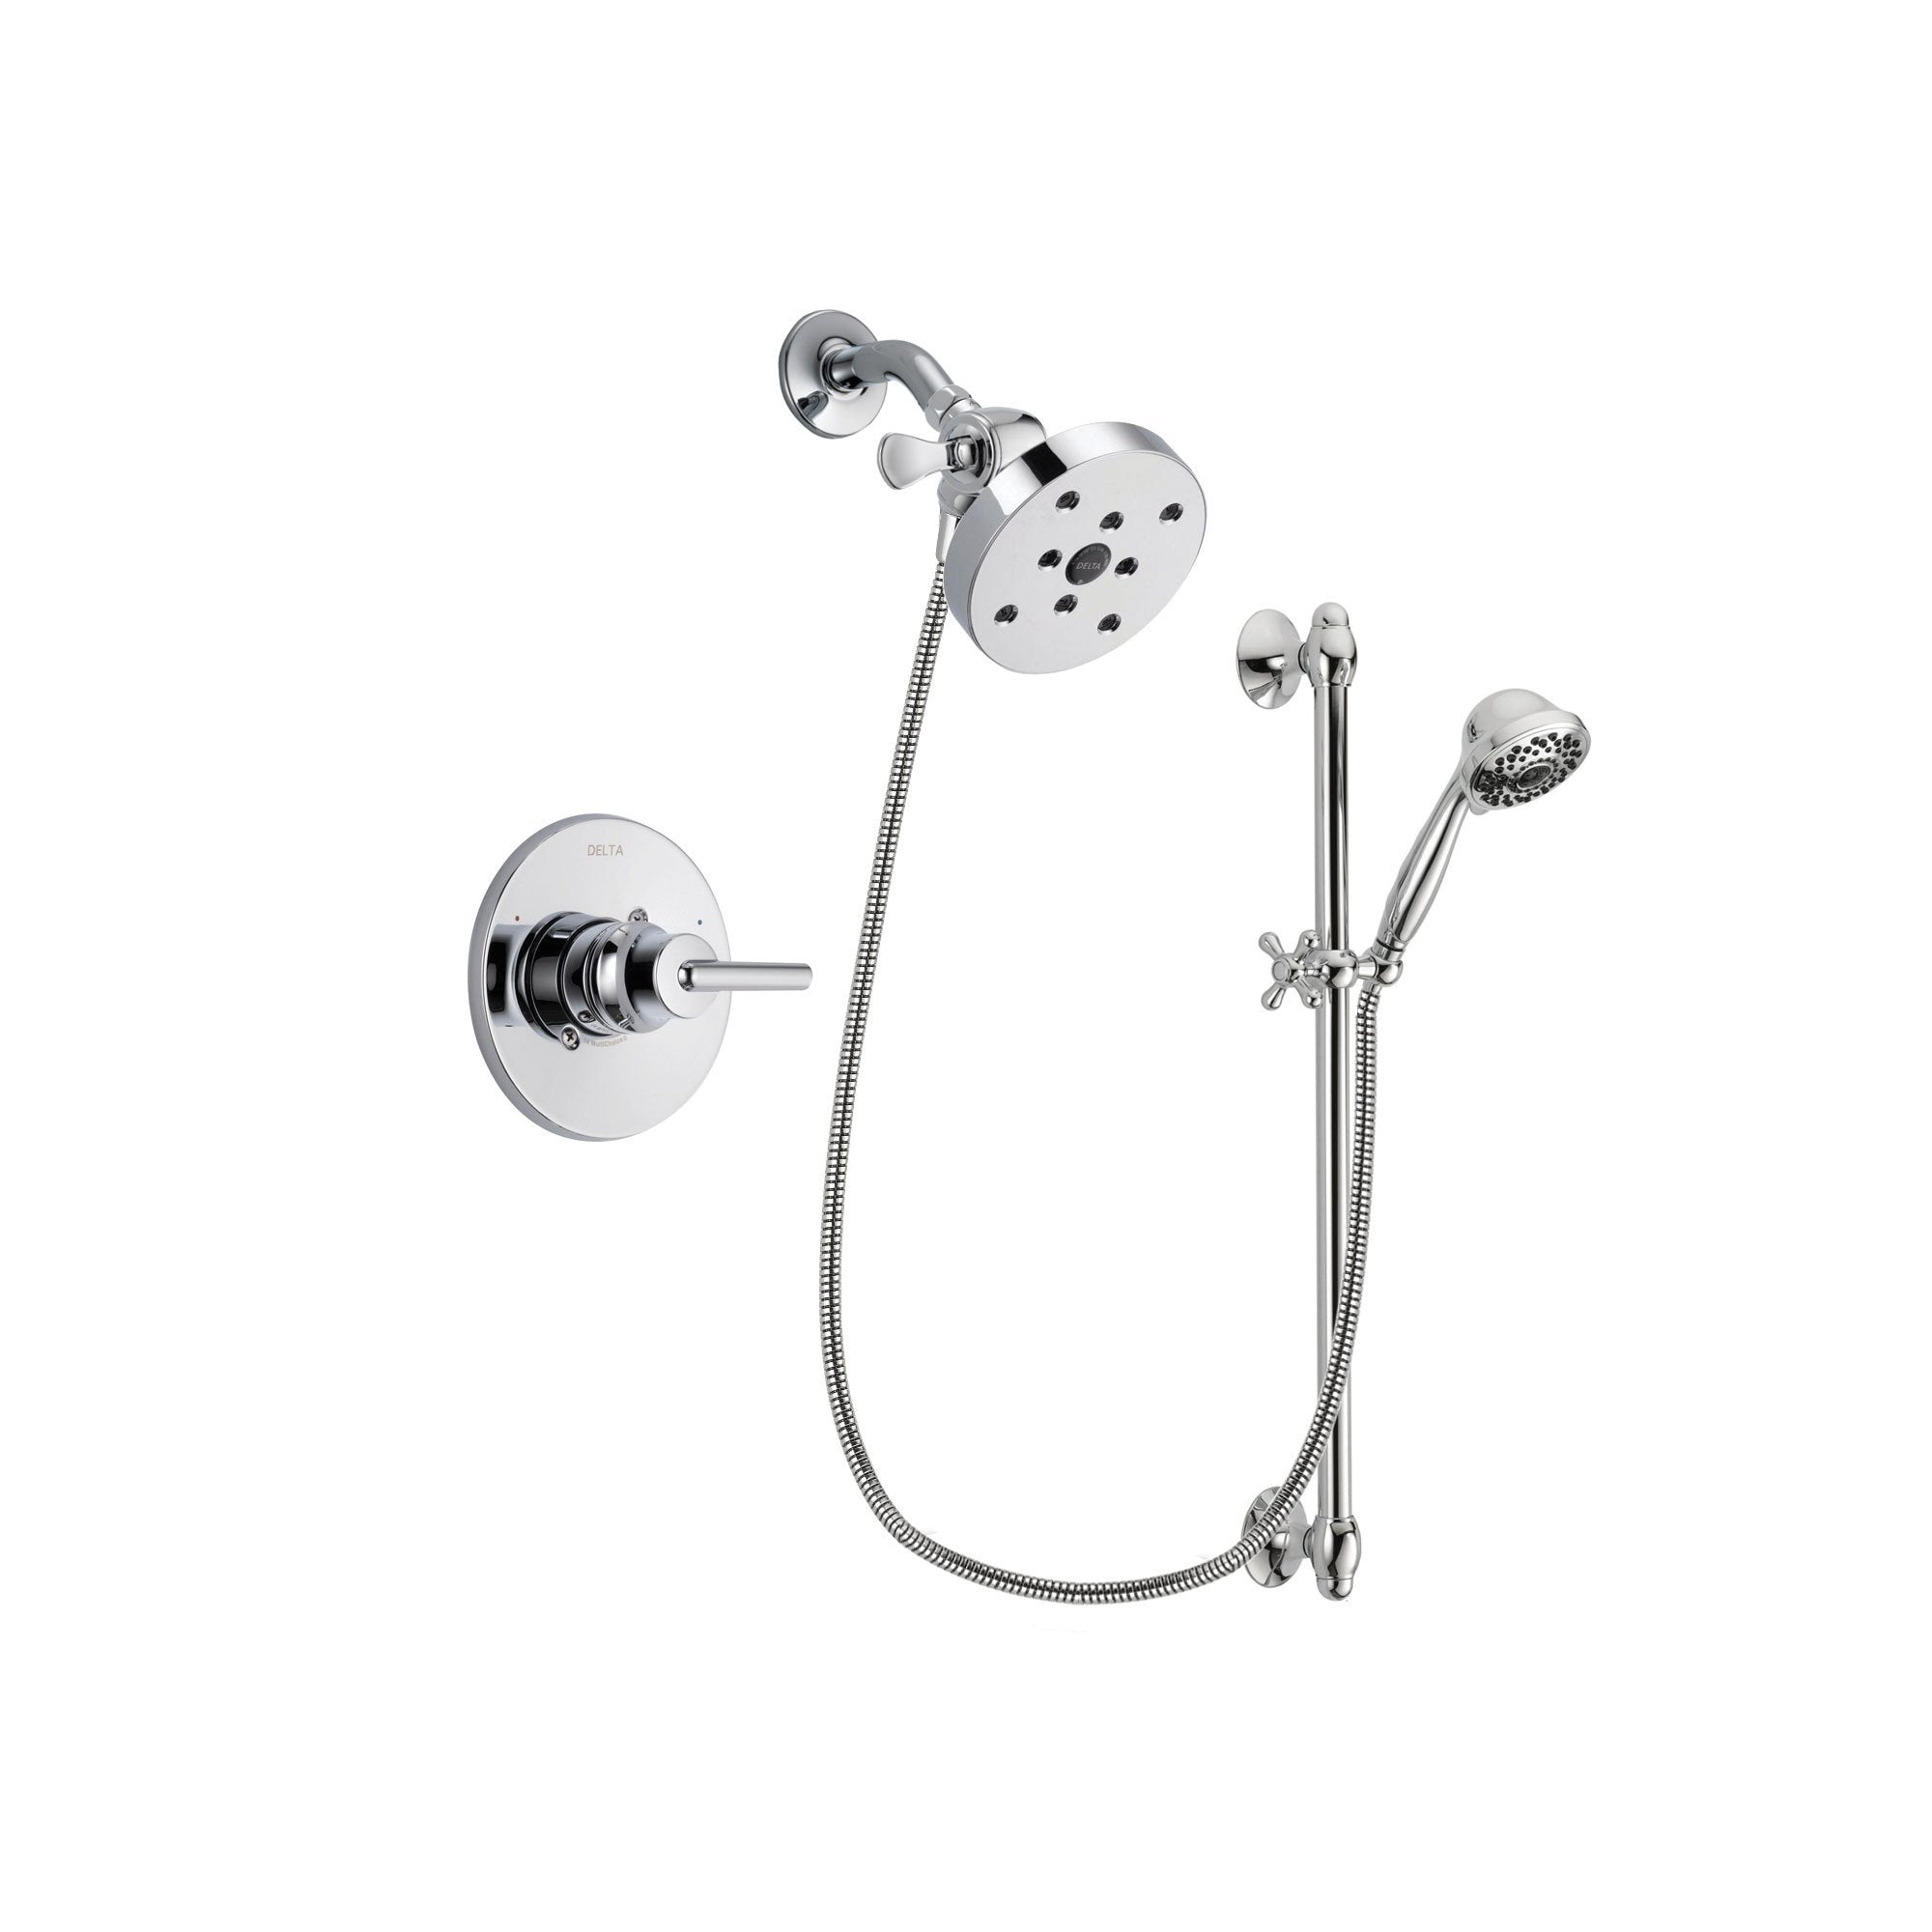 Delta Trinsic Chrome Shower Faucet System w/ Showerhead and Hand Shower DSP0676V